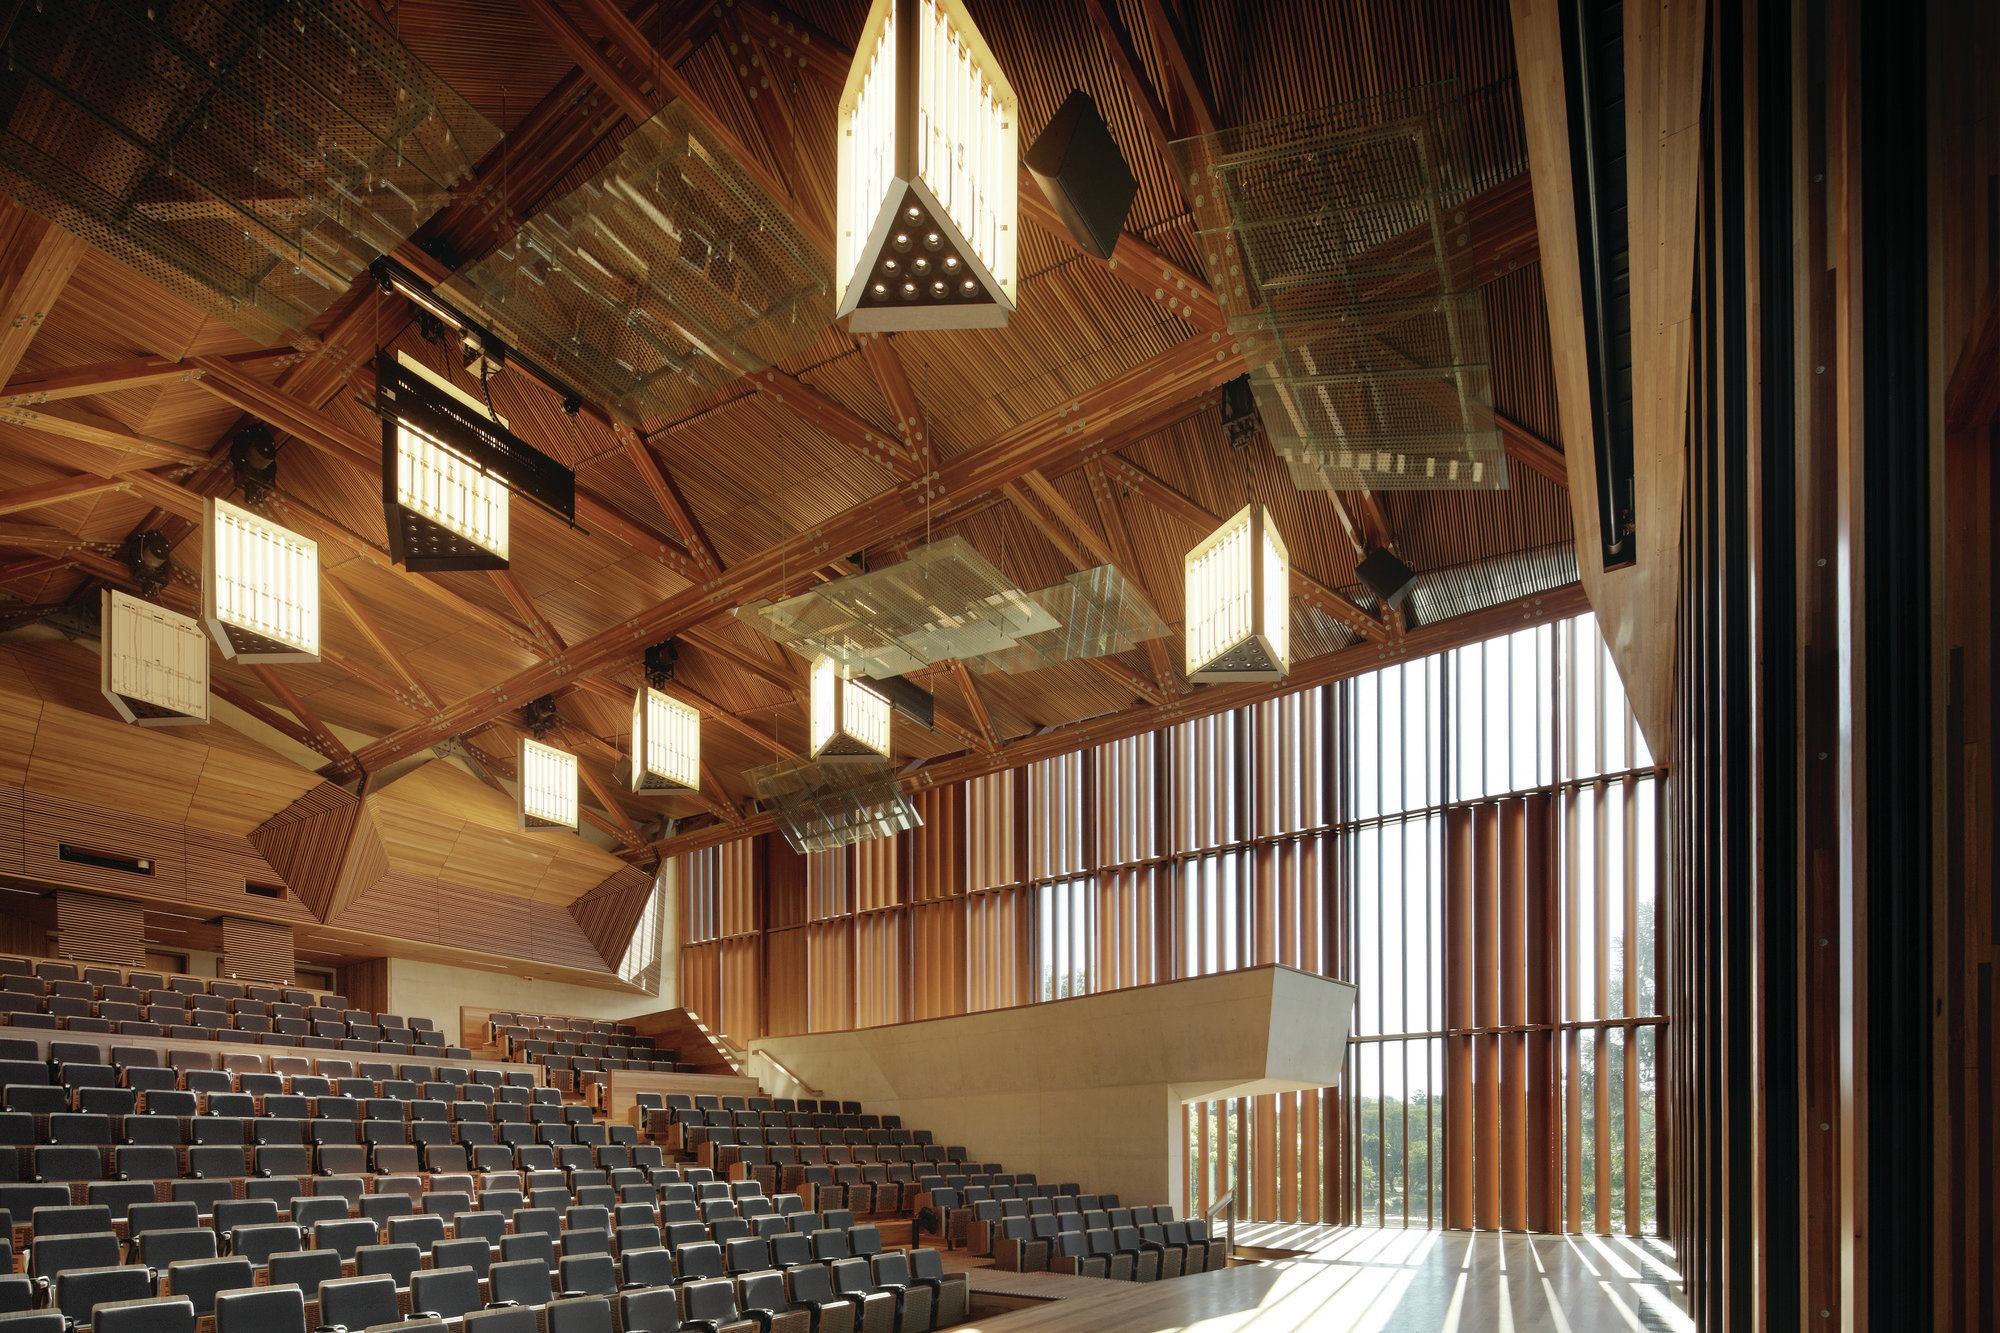 the auditorium at the university of queensland architect magazine wood ceilings design detail. Black Bedroom Furniture Sets. Home Design Ideas